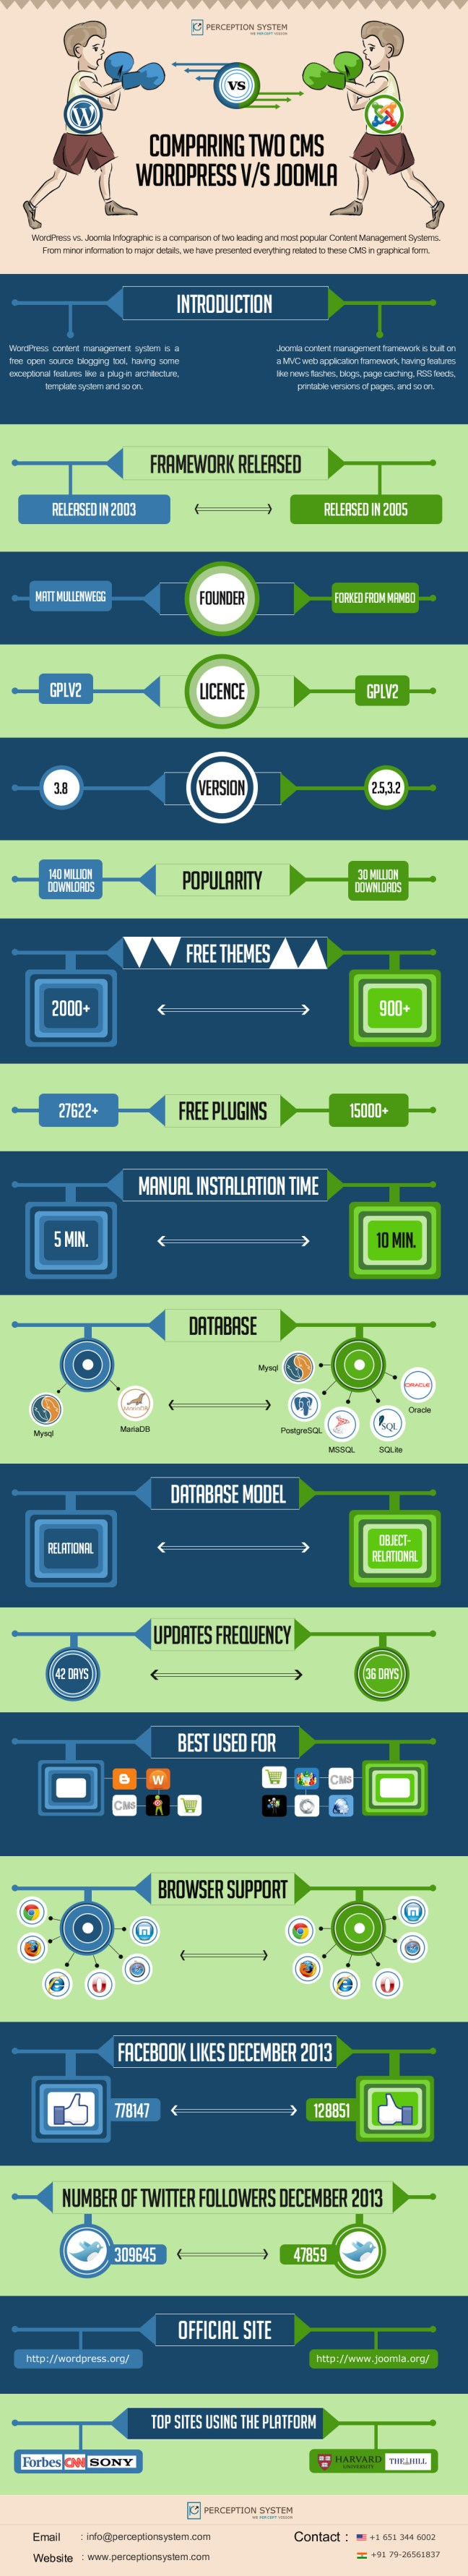 wordpress-vs-joomla_infographic